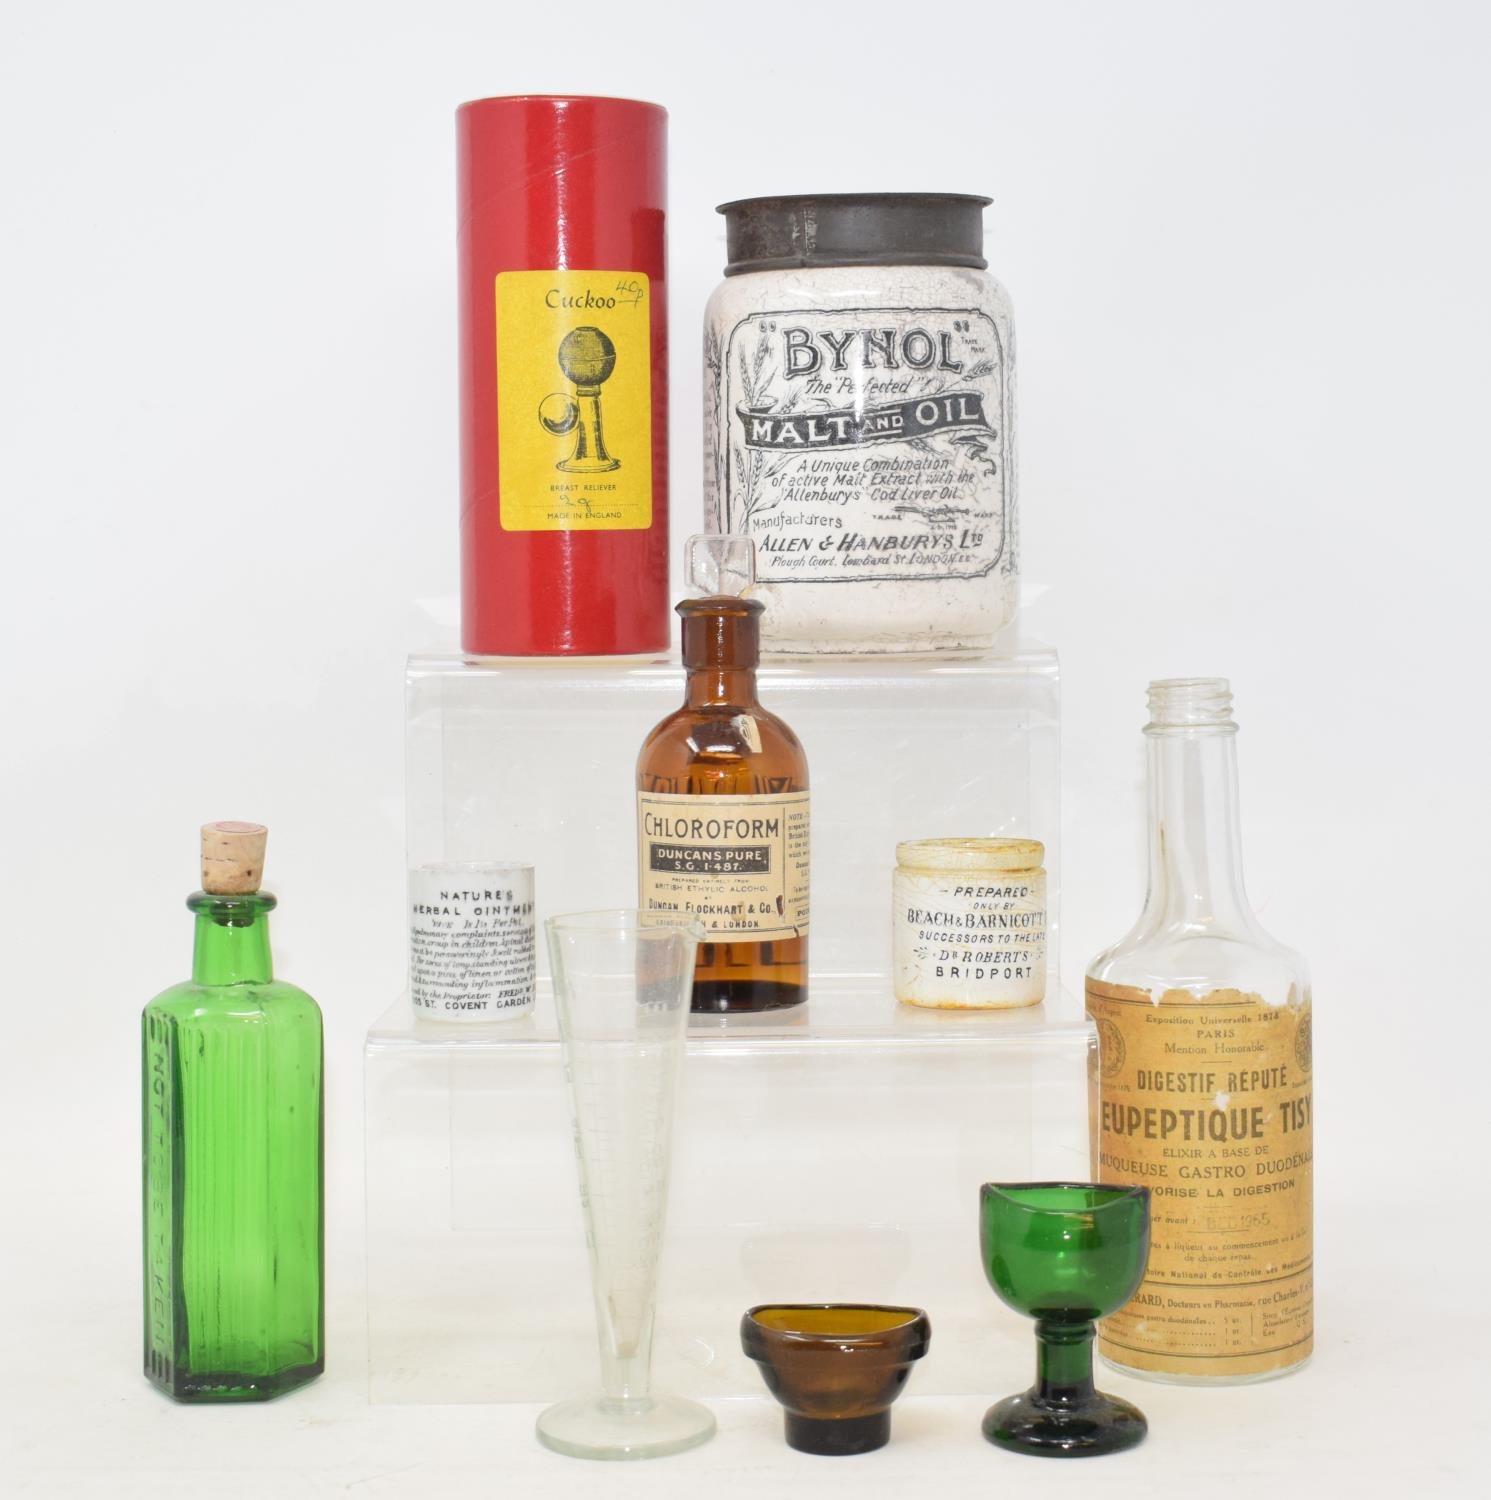 Lot 3 - A collection of medical apothecary items, including bottles, measures, jars, syringes and a Cuckoo